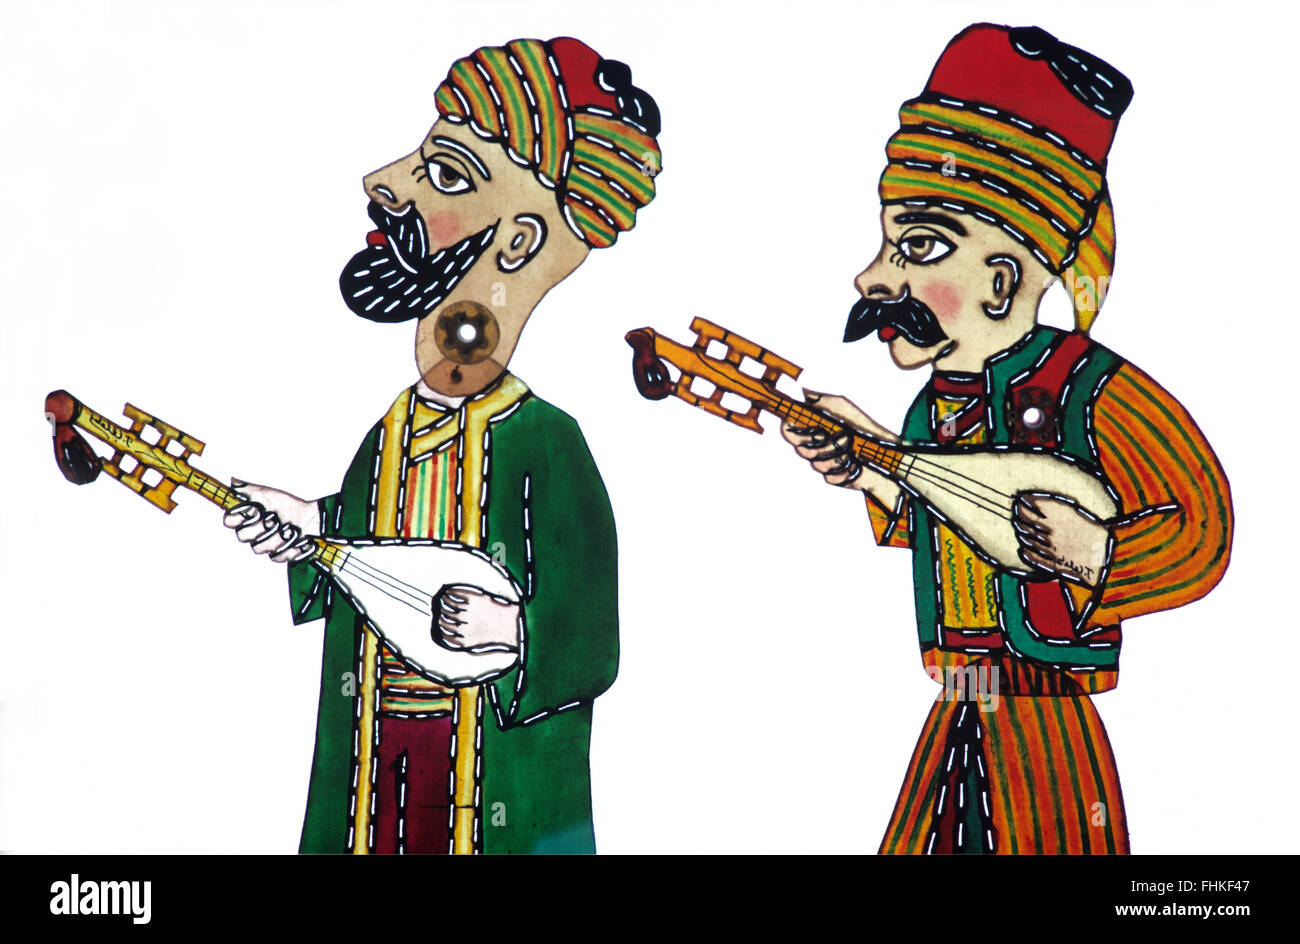 Shadow Puppets of Two Turkish Folk Musicians Playing Saz or Baglama Stringed Instruments. Characters from the Karagöz - Stock Image